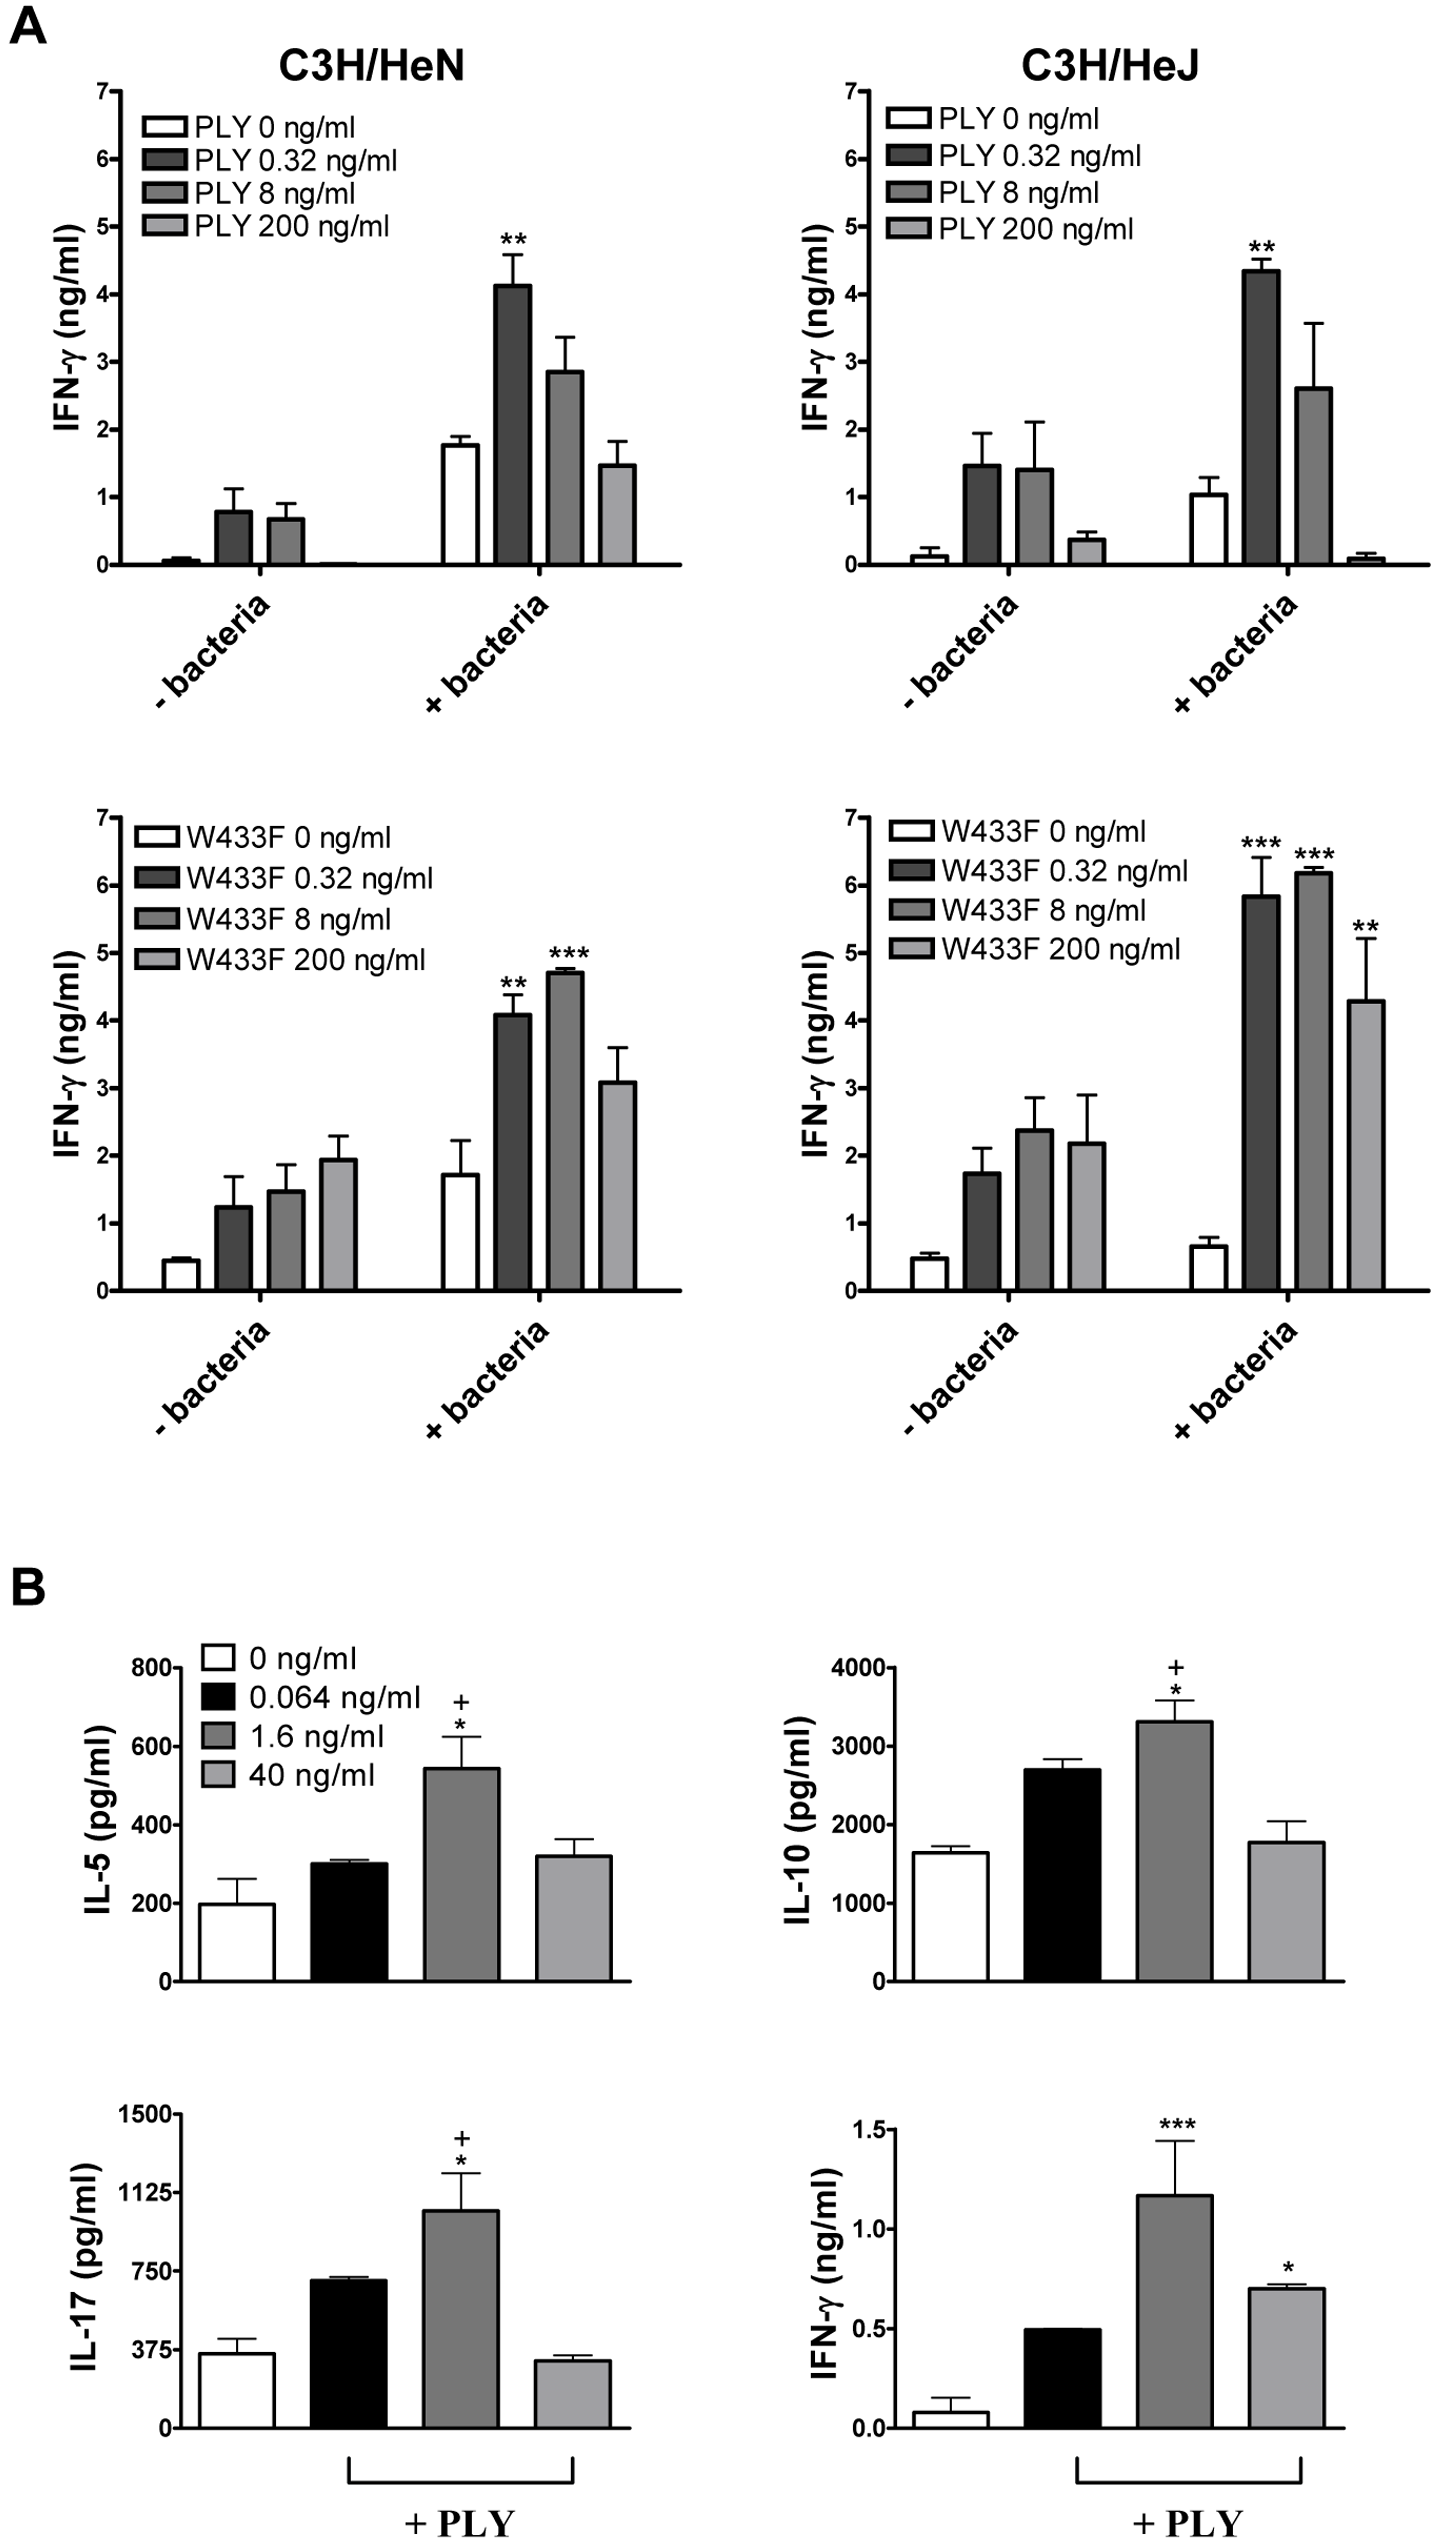 PLY enhances cytokine production by splenocytes independently of TLR4.